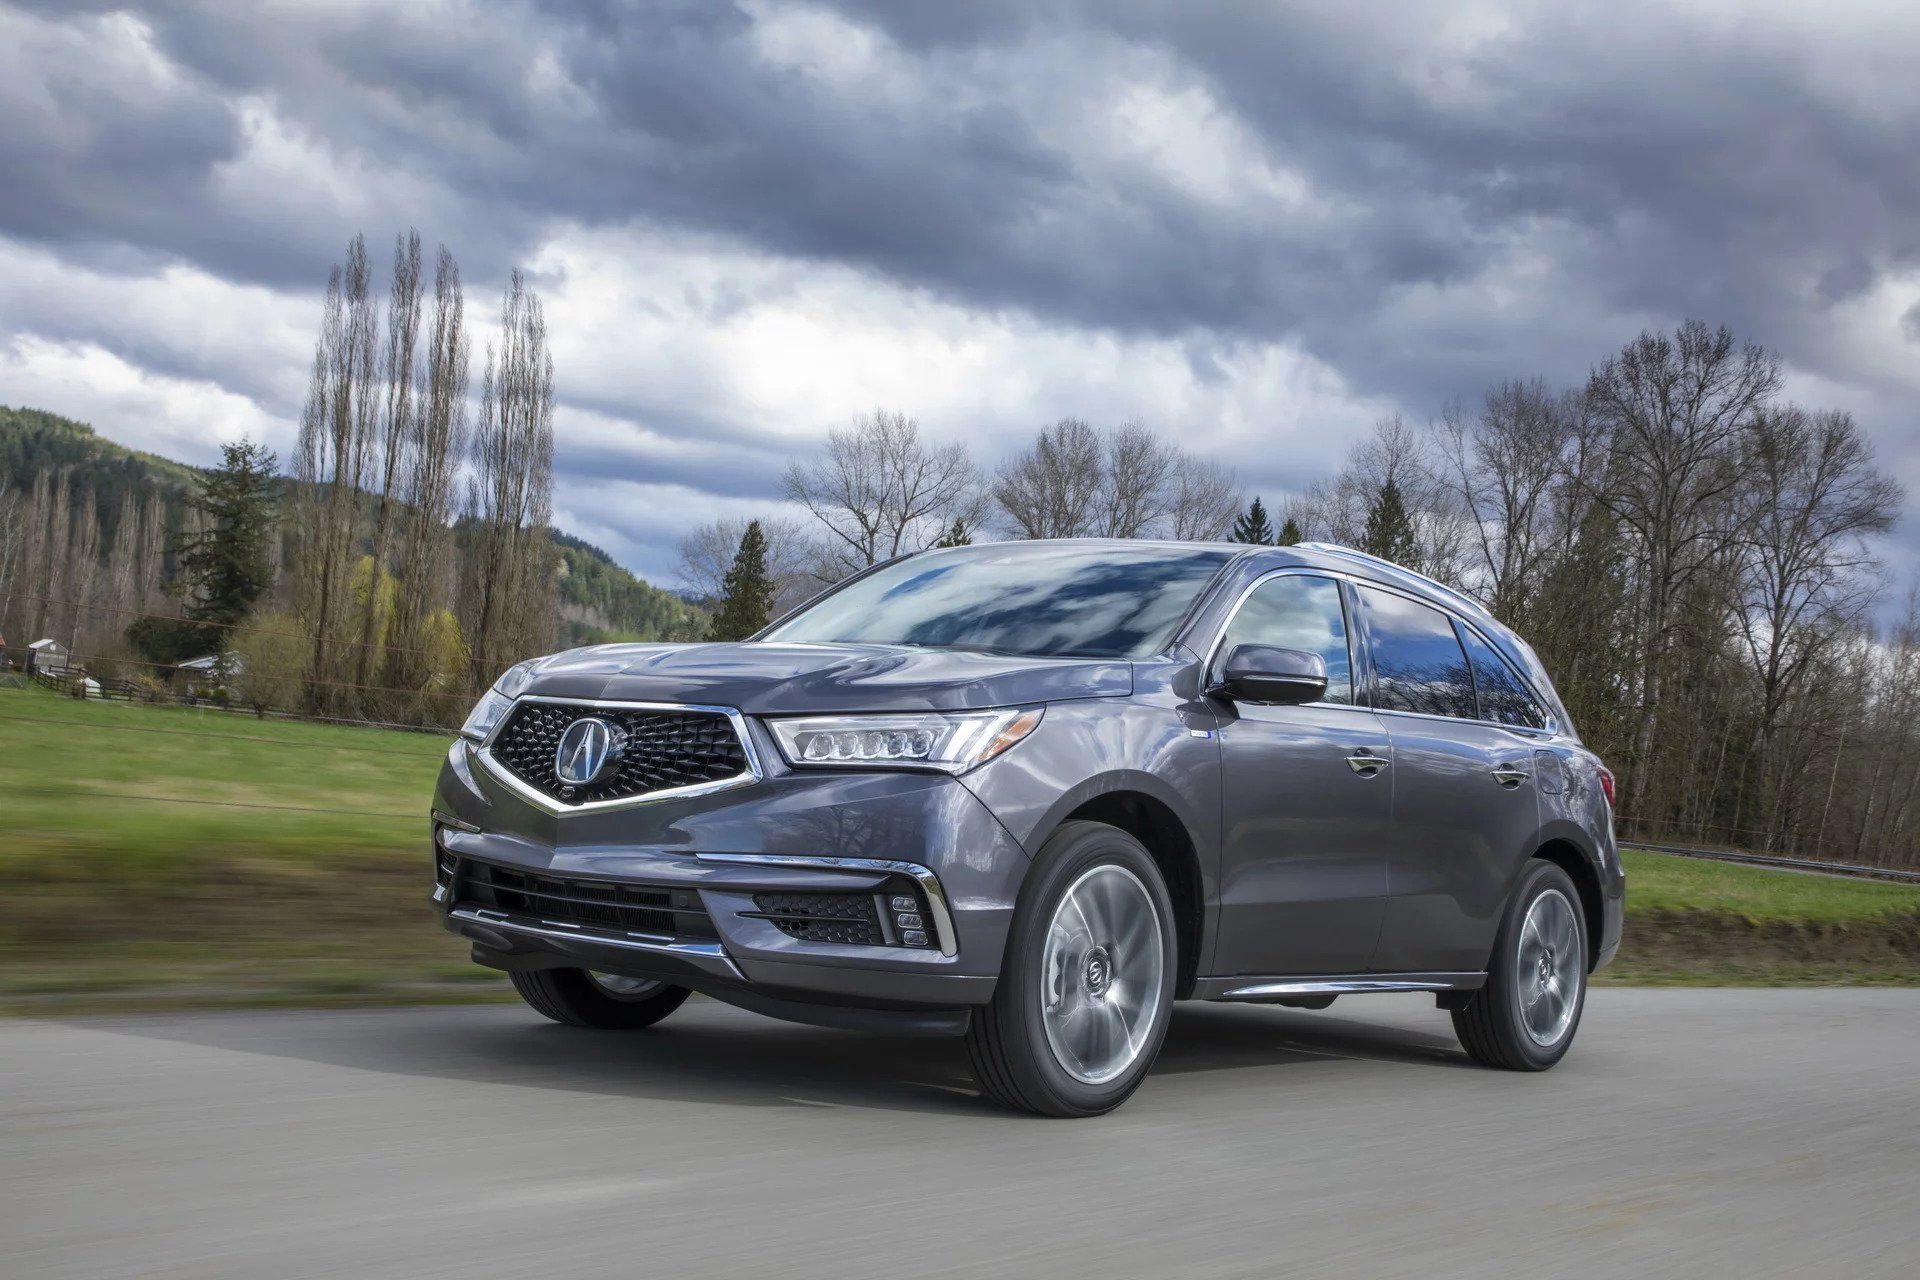 New 2019 Acura-MDX SH-AWD w/Tech w/A-SPEC MDX SH-AWD w/Tech w/A-SPEC for sale $54,800 at M and V Leasing in Brooklyn NY 11223 1